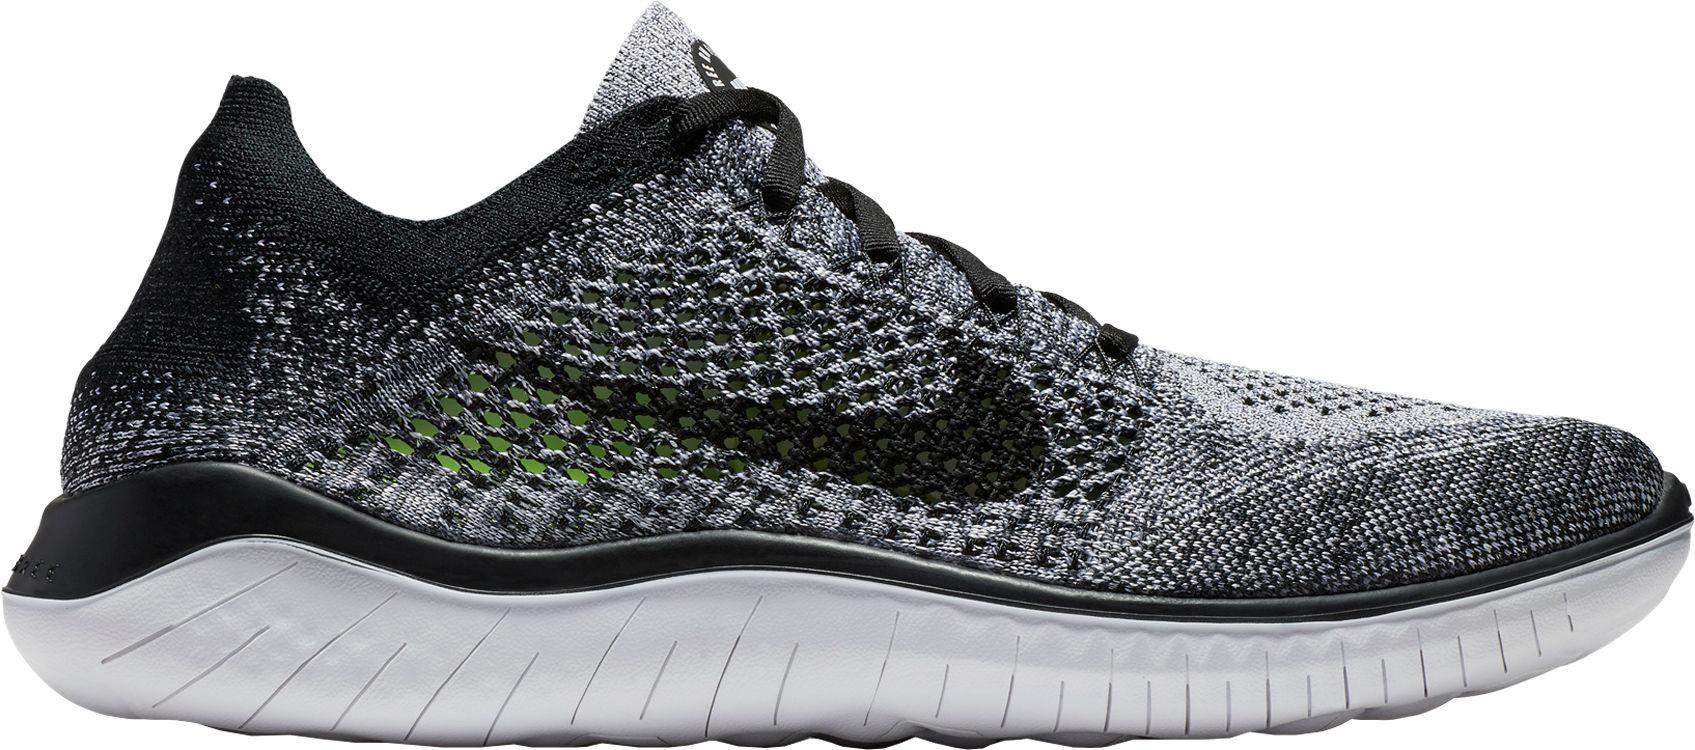 free shipping 3e03d 19418 Nike - Black Free Rn Flyknit 2018 Running Shoes for Men - Lyst